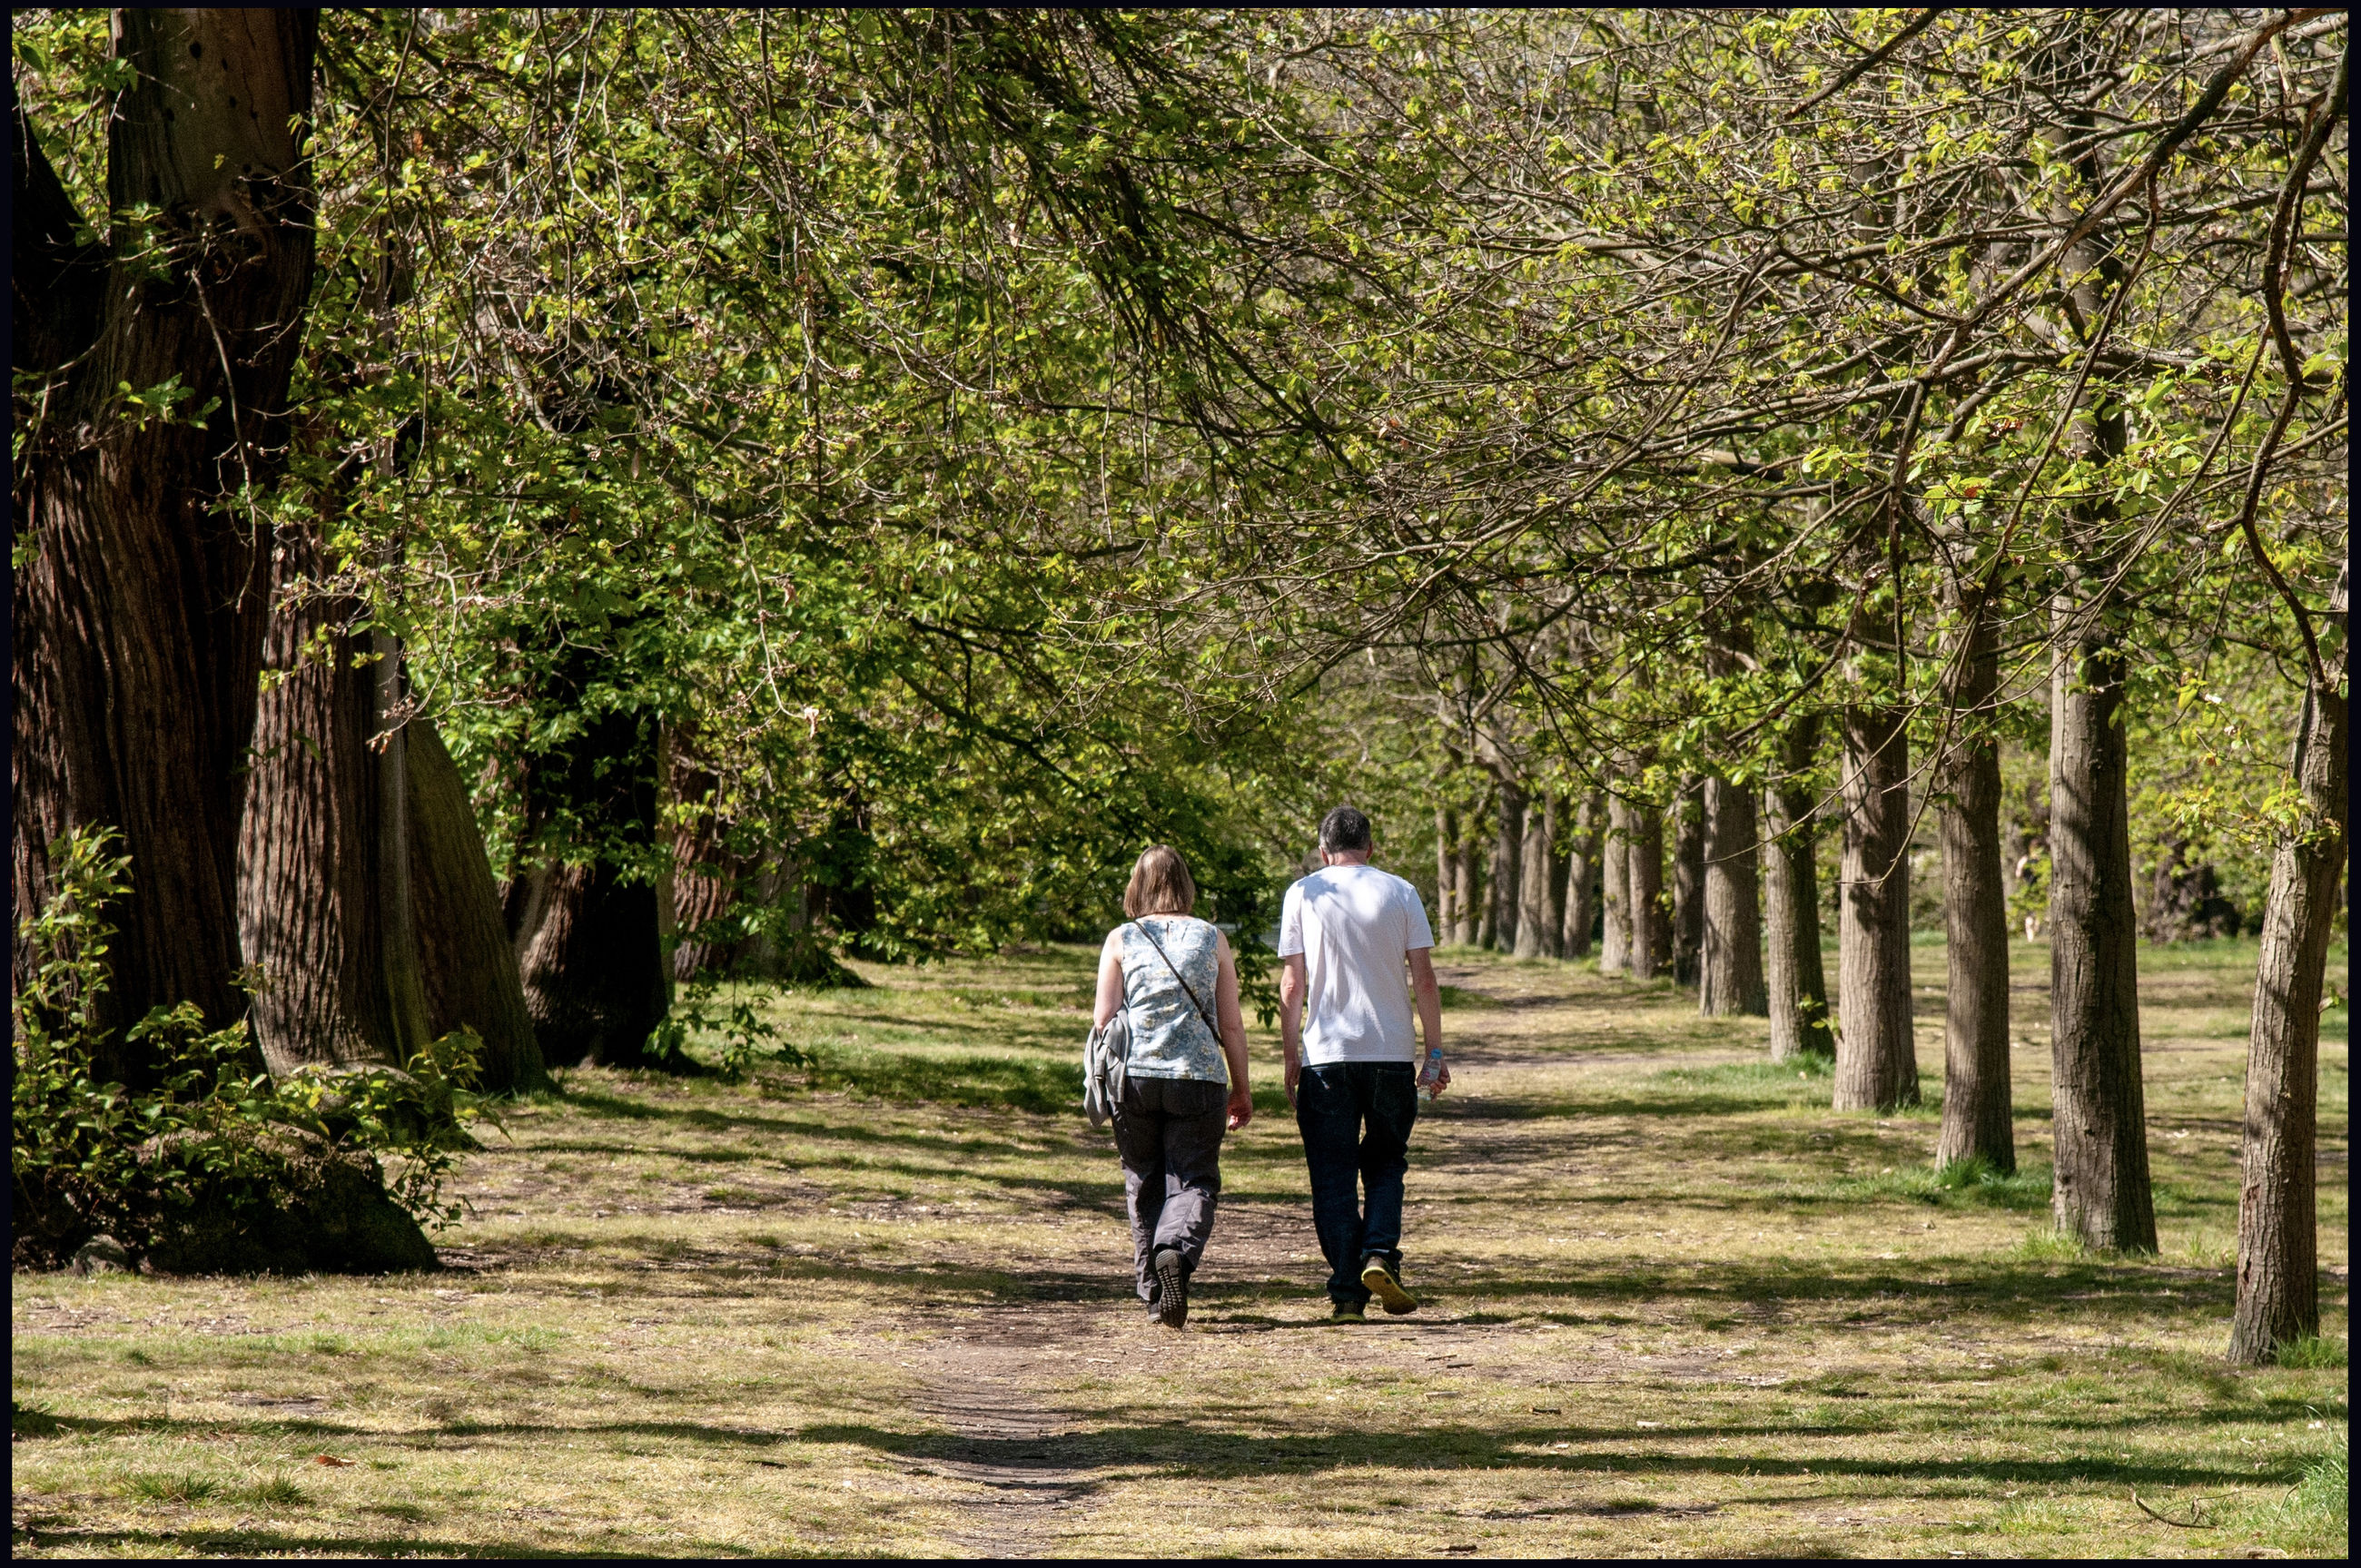 tree, plant, full length, two people, walking, rear view, togetherness, men, adult, love, nature, couple - relationship, casual clothing, women, emotion, day, heterosexual couple, positive emotion, bonding, lifestyles, outdoors, treelined